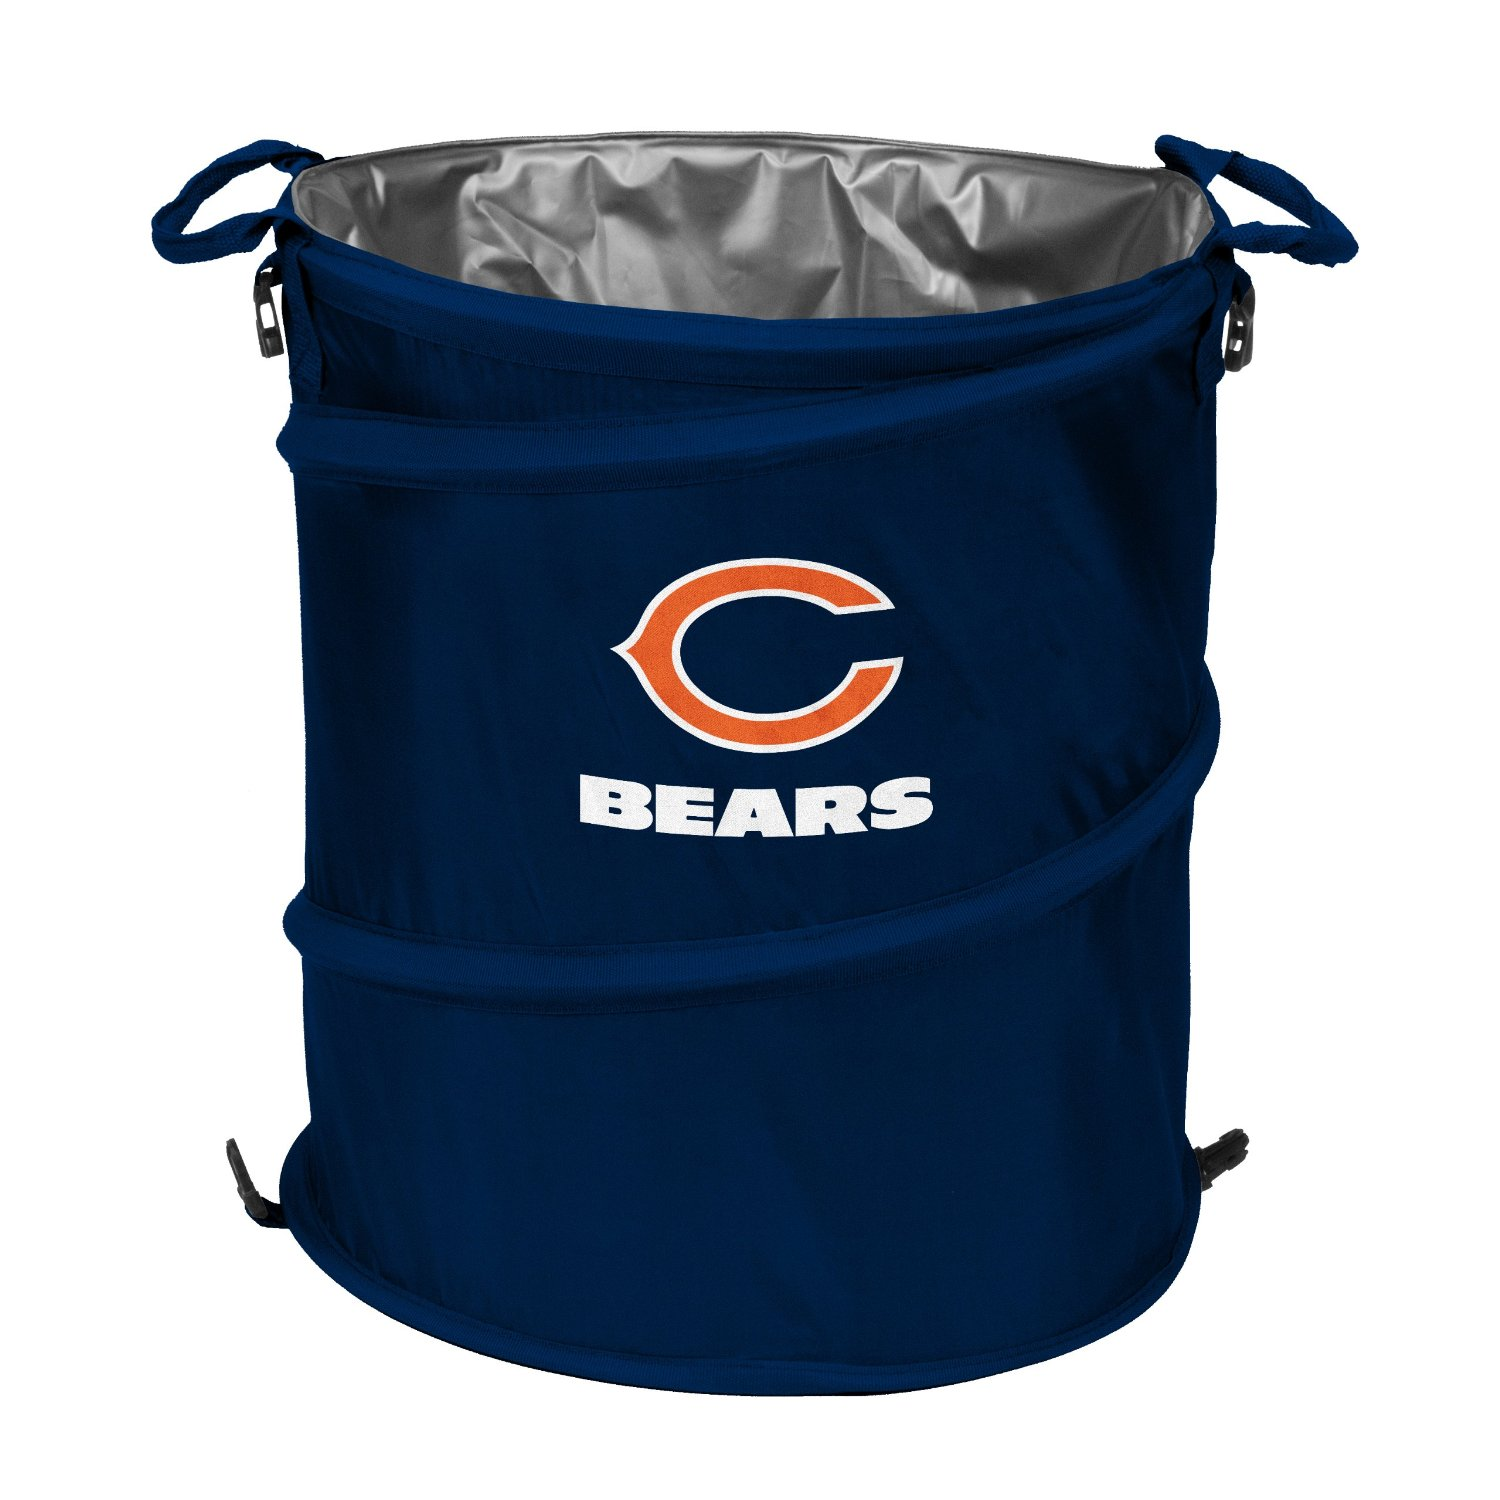 Collapsible Trash Cans Chicago Bears Nfl Trash Cans Chicago Bears Nfl